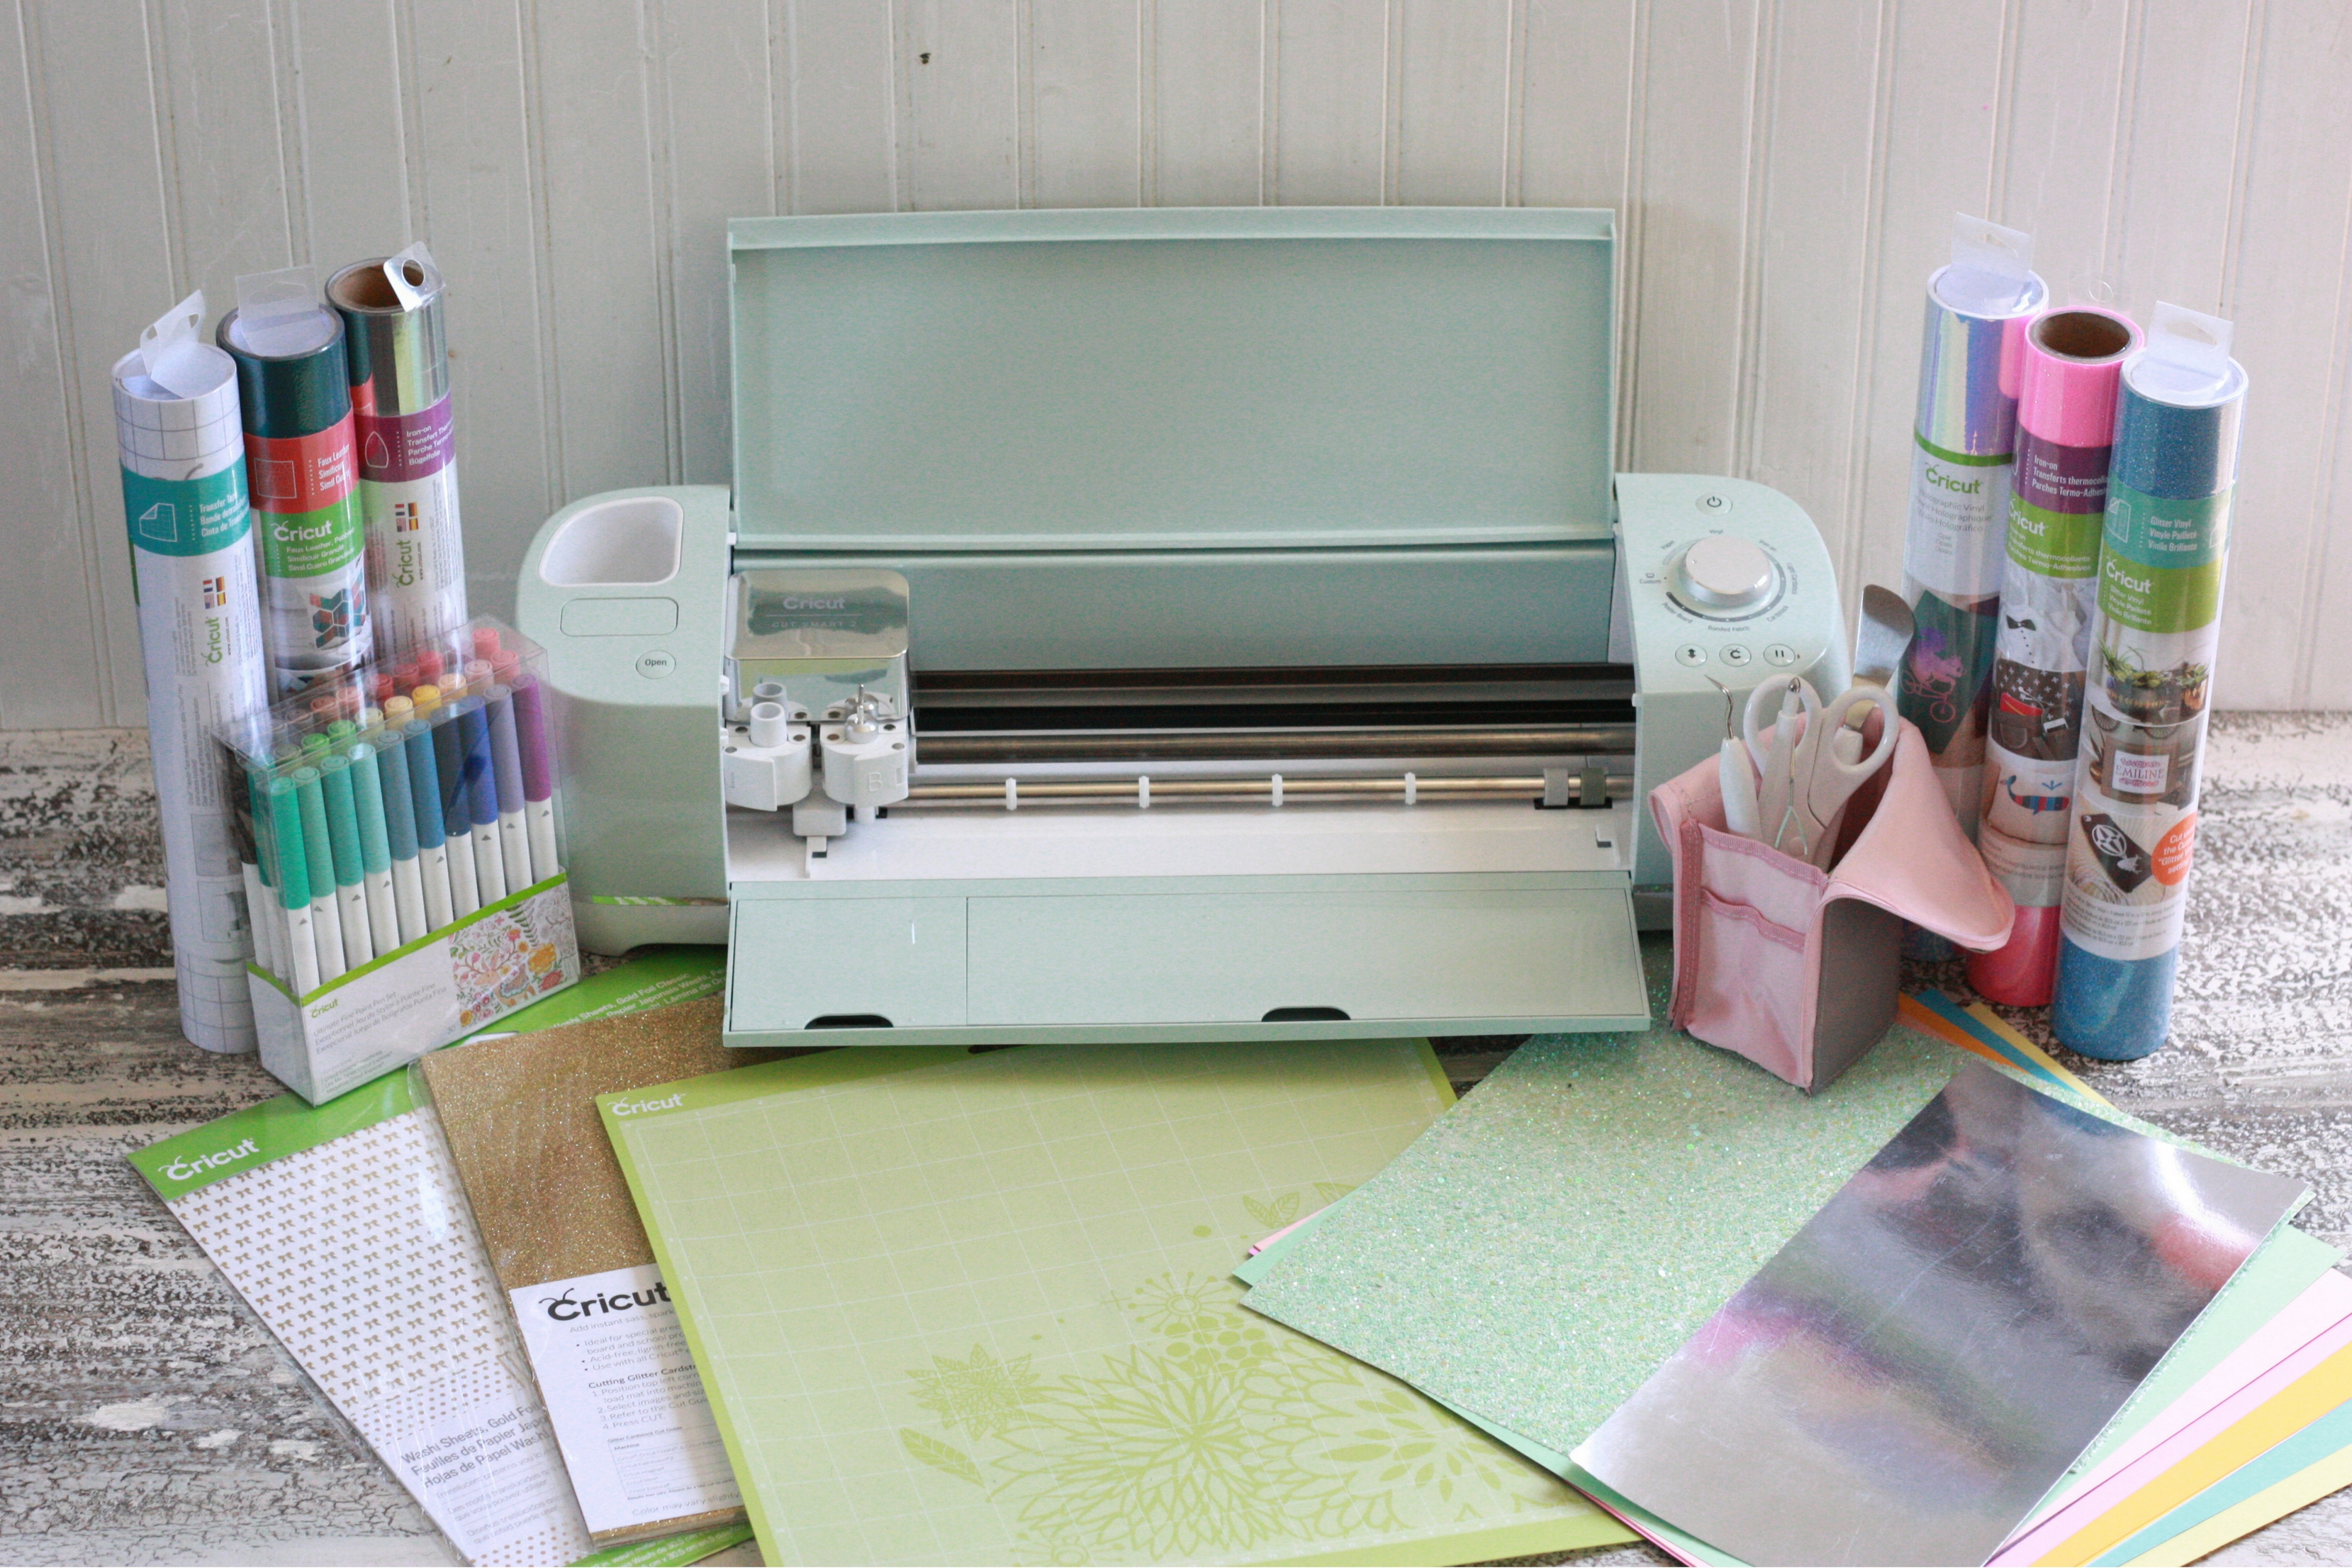 WILL I USE THE CRICUT MACHINE ENOUGH TO JUSTIFY THE PRICE